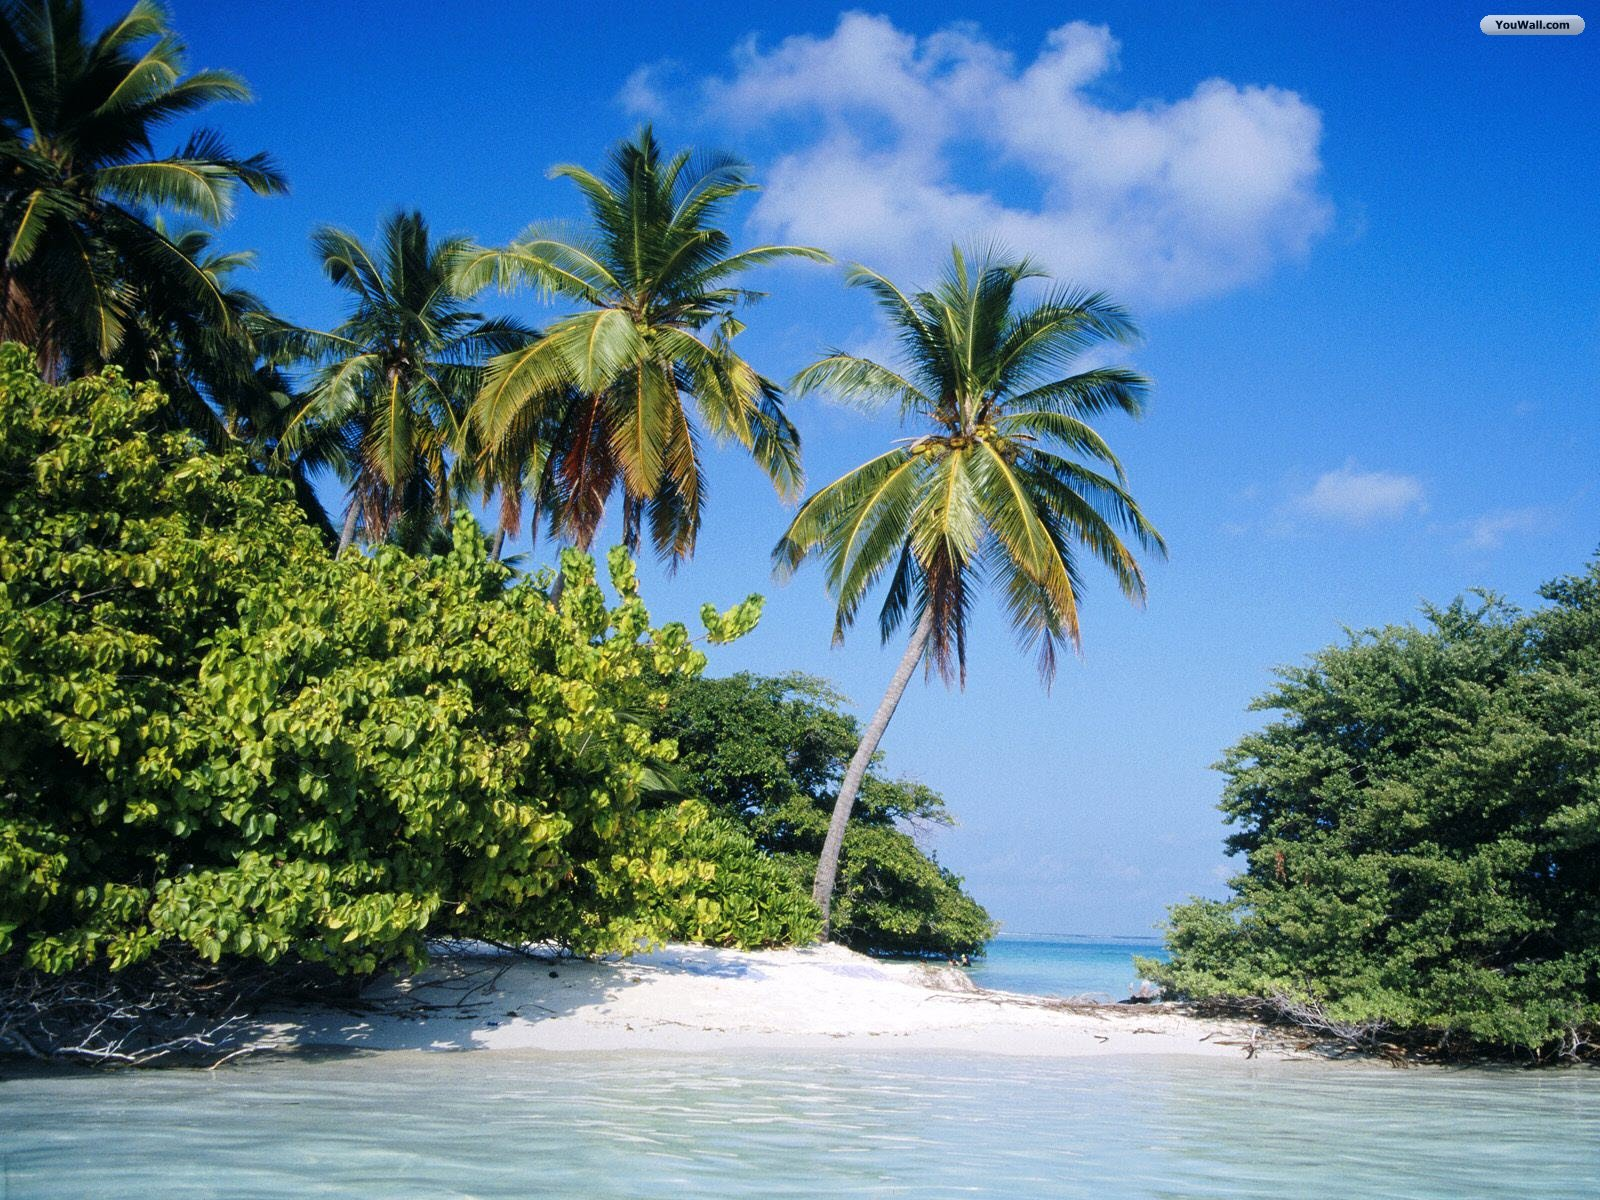 Tropical Island Wallpaper   wallpaperwallpapersfree wallpaper 1600x1200